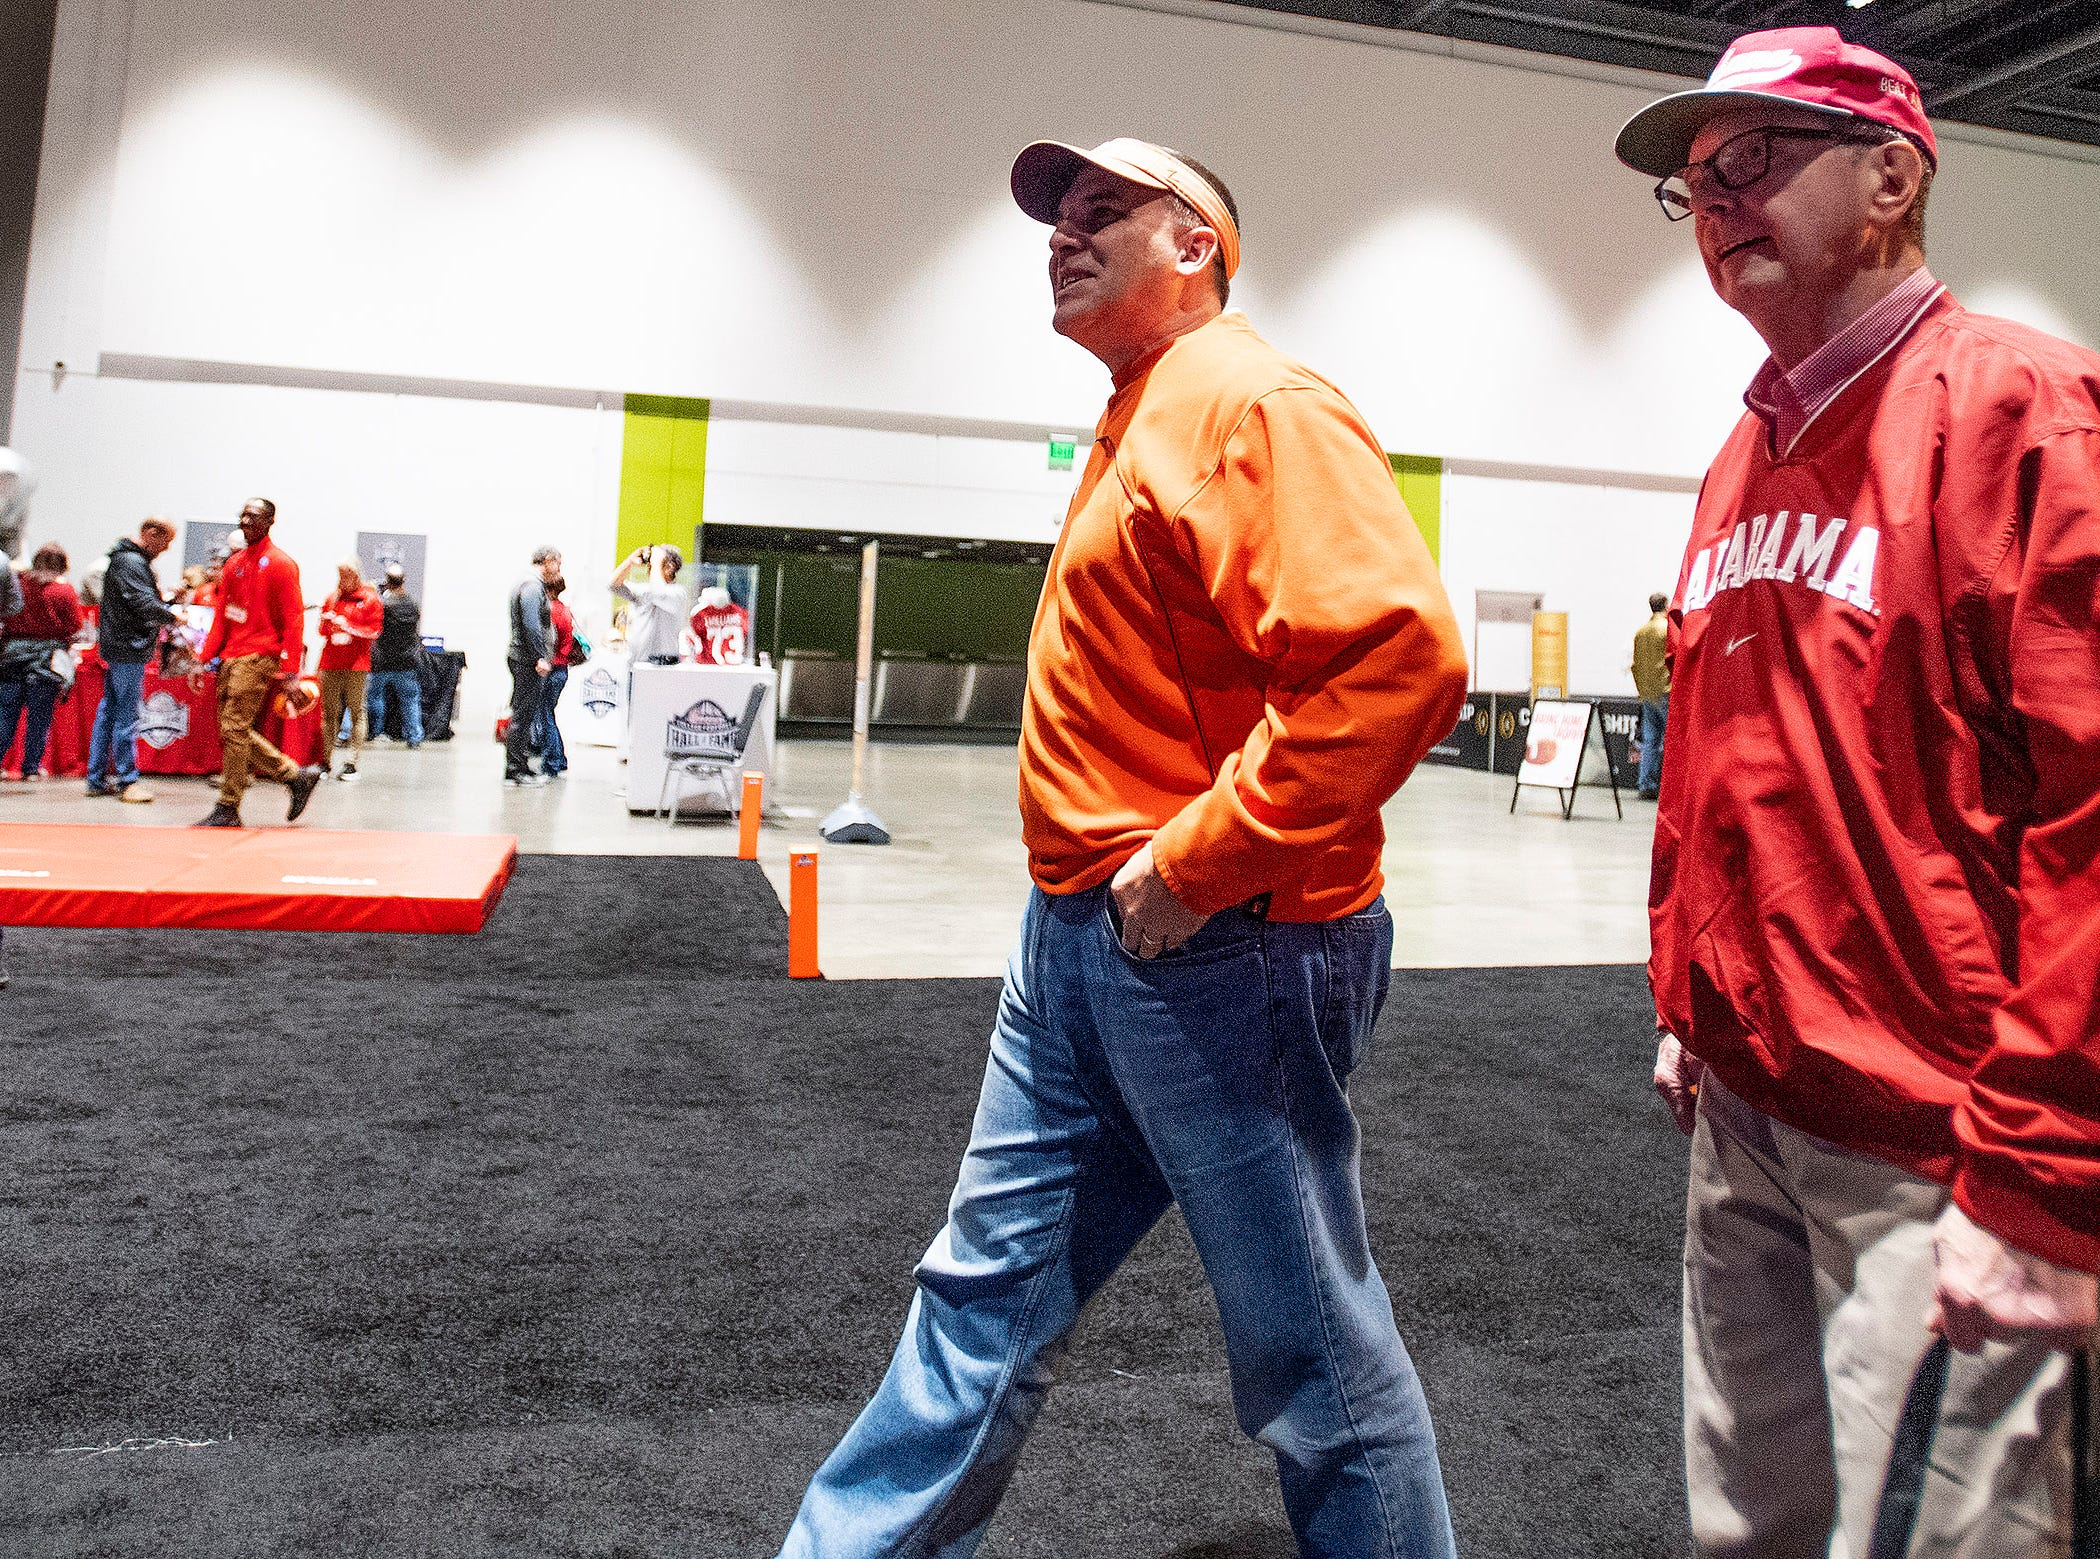 Clemson fan Glen Adair, left, and his Alabama fan father Charles Edgar walk through the Playoff Fan Central at the College Football National Championship in San Jose, Ca., on Sunday January 6, 2019.